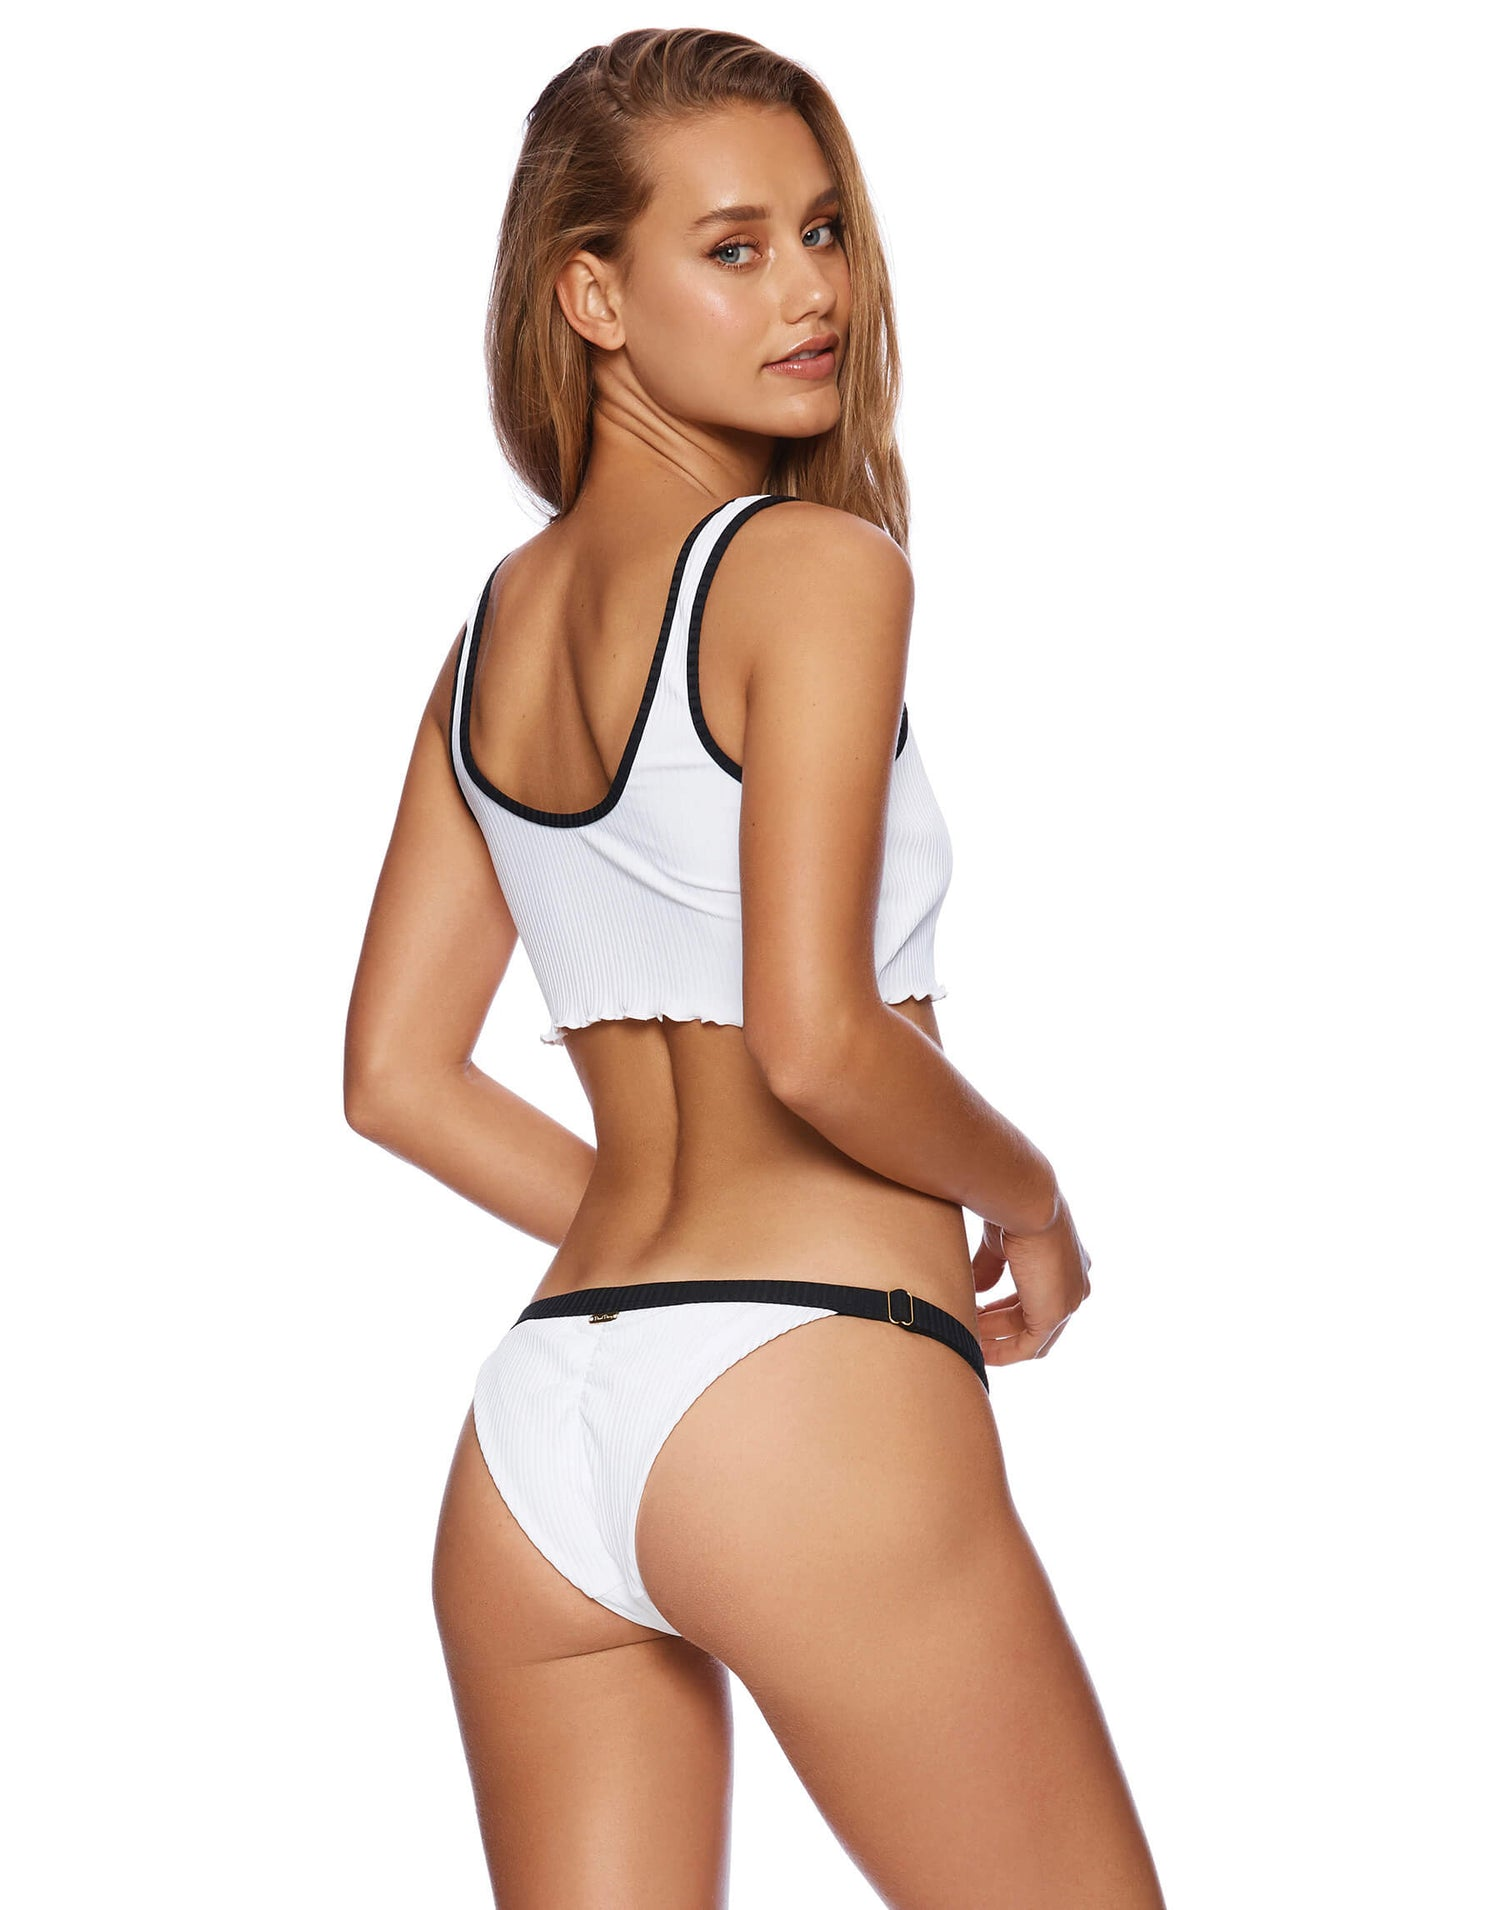 Presley Adjustable Skimpy Bikini Bottom in White Rib - alternate back view